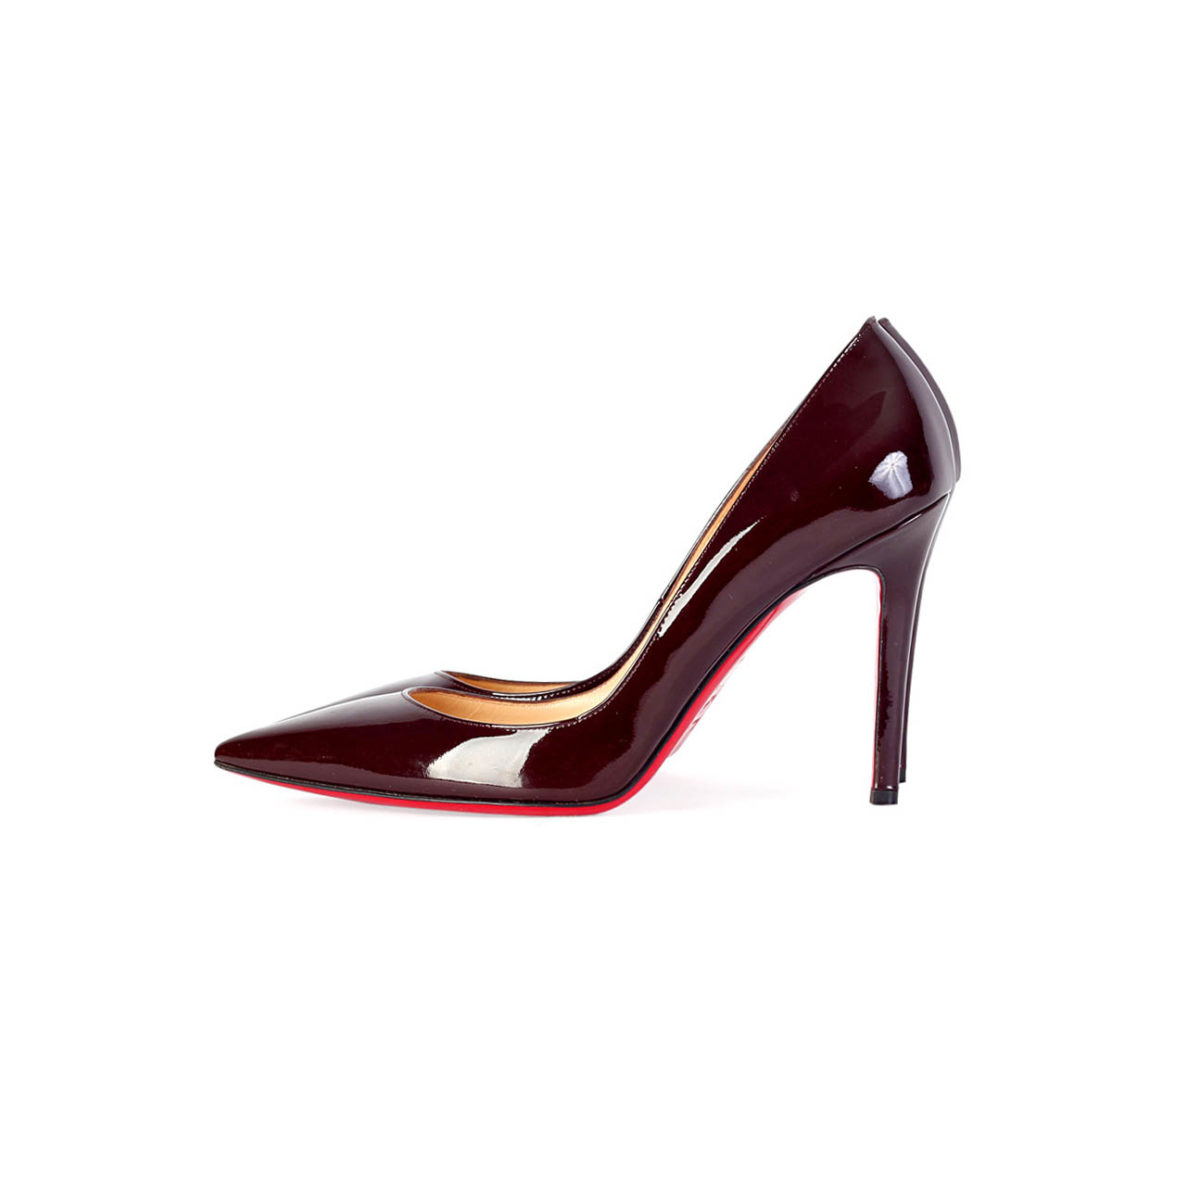 cheap for discount 66ac1 8575e CHRISTIAN LOUBOUTIN Pigalle 100mm Patent Leather Shoes maroon – S: 37.5  (4.5)